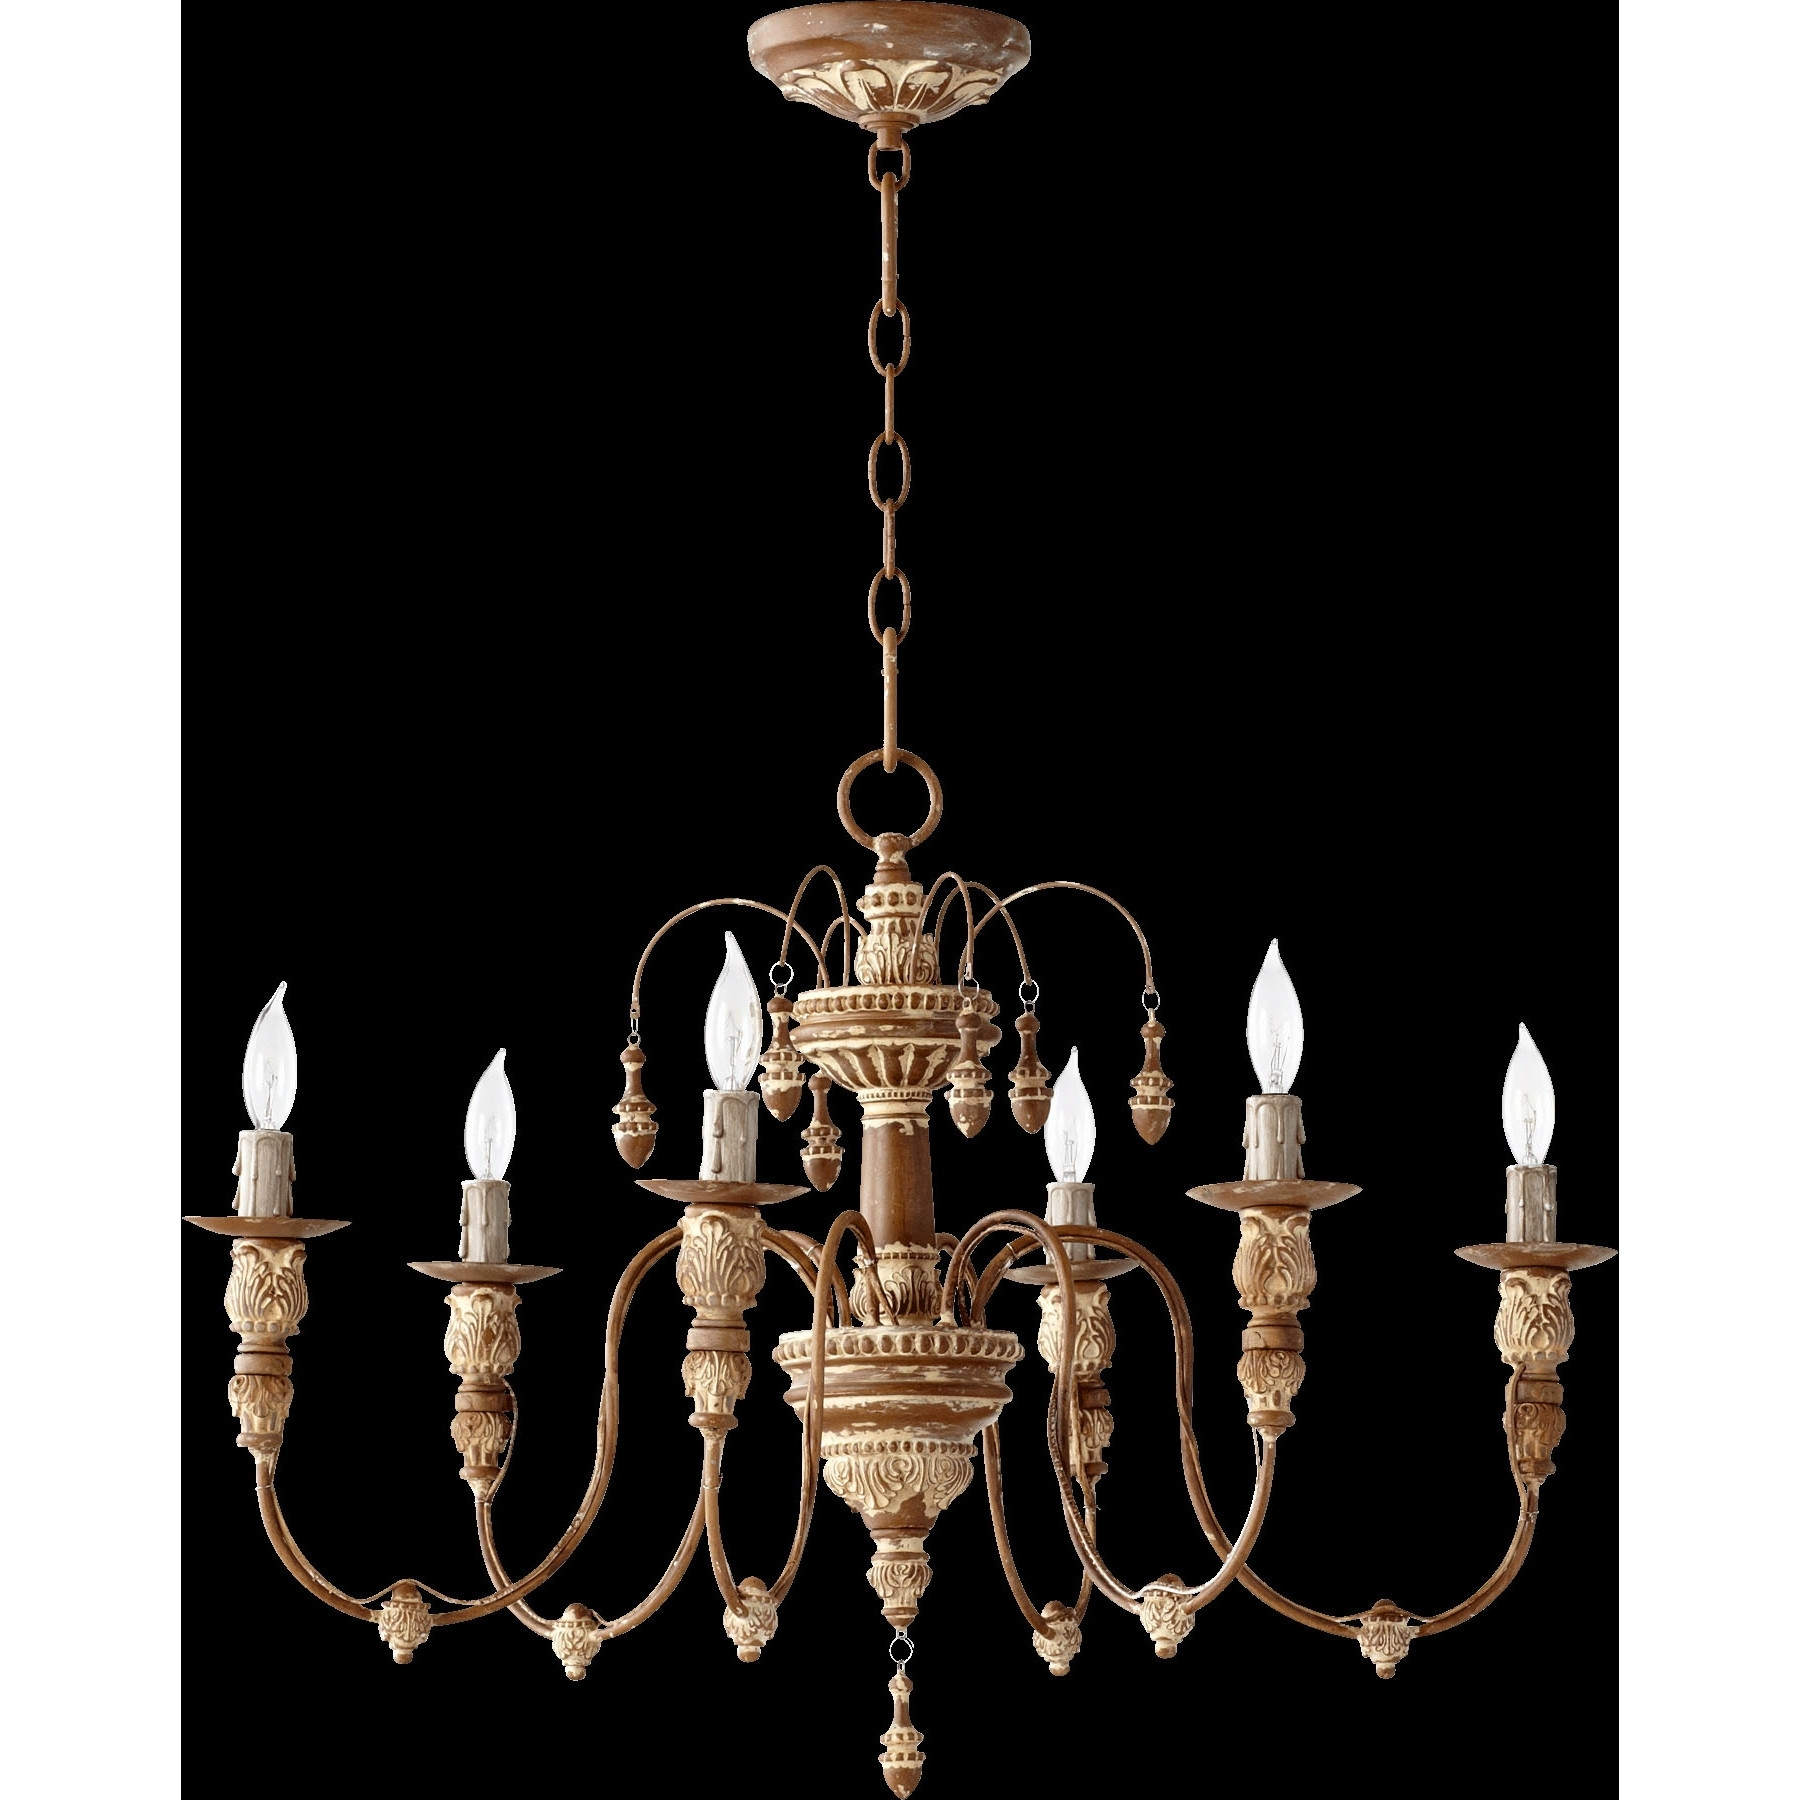 Wayfair Chandeliers Intended For Favorite Chandeliers : Wayfair Chandeliers Awesome Lighting Lamps Traditional (View 8 of 15)